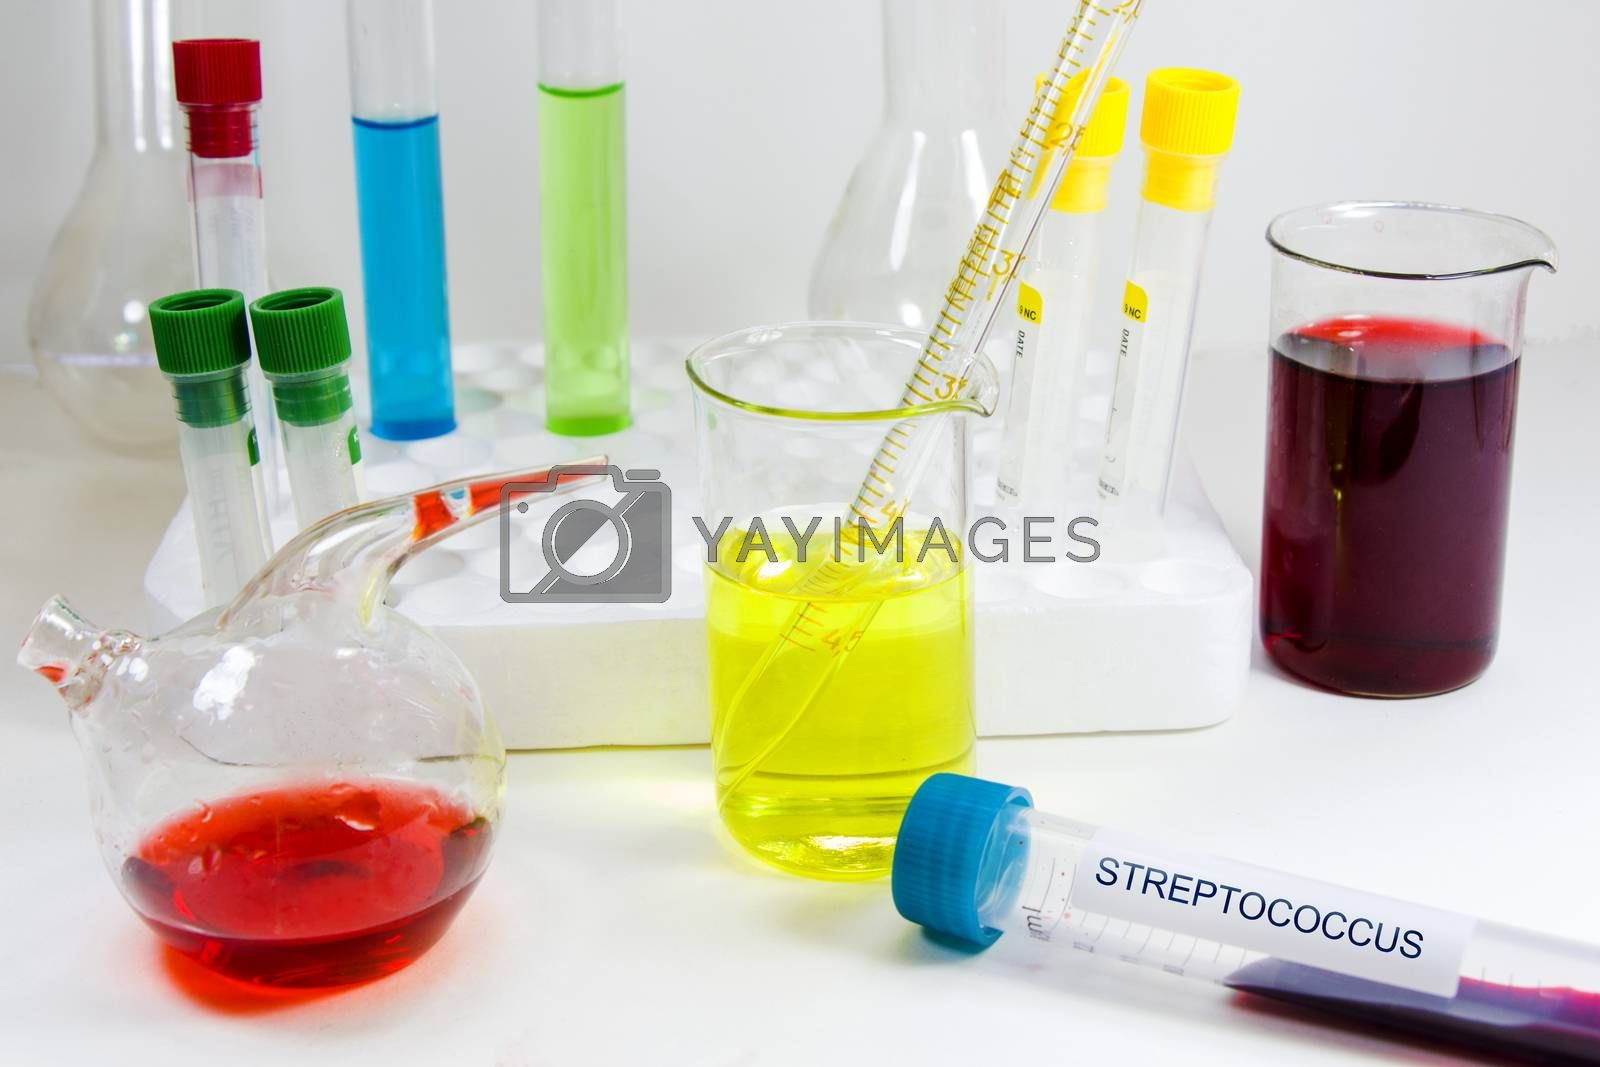 Streptococcus blood test tube, laboratory and chemical instruments, diagnoses and research, liquid chemical.